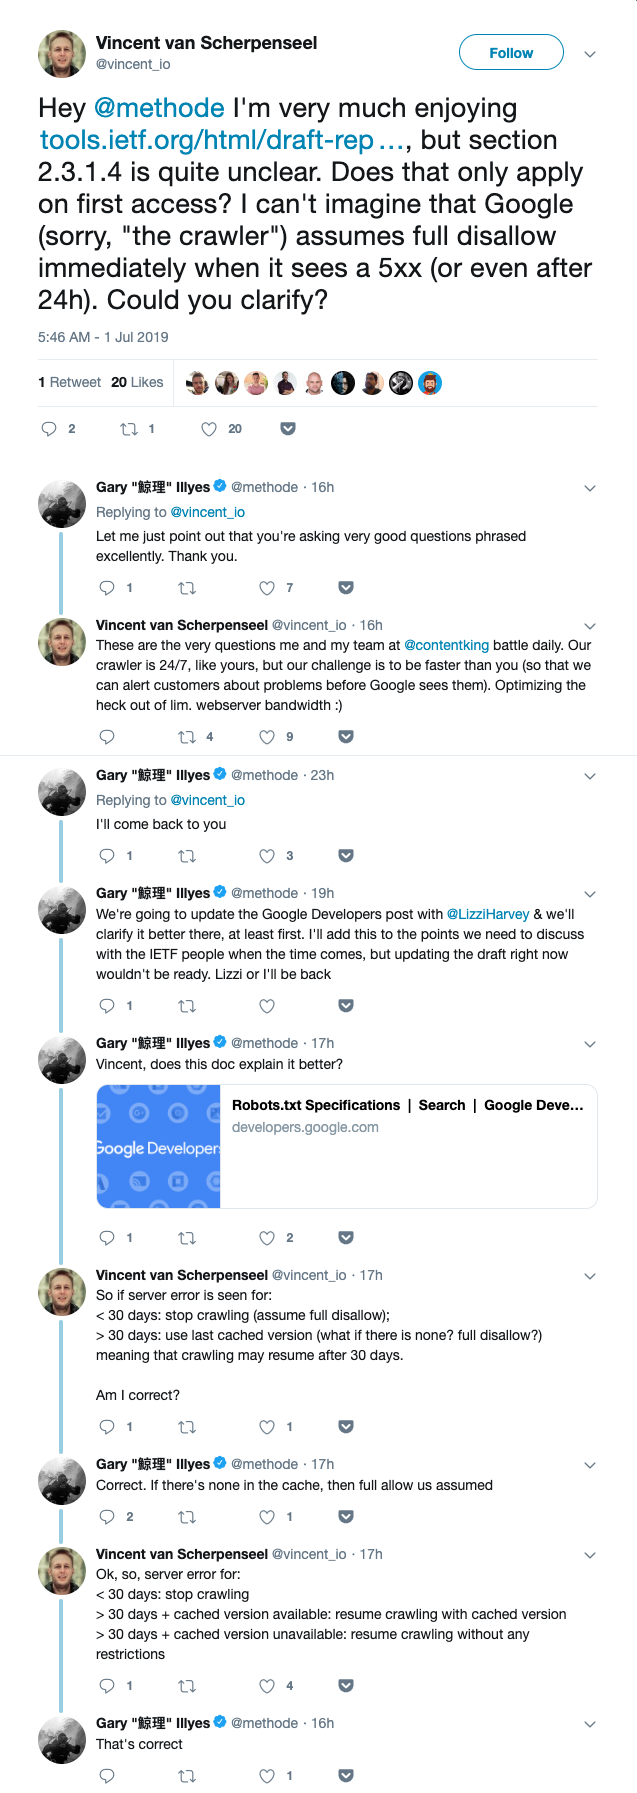 Twitter exchange between Vincent van Scherpenseel and Gary Illyes